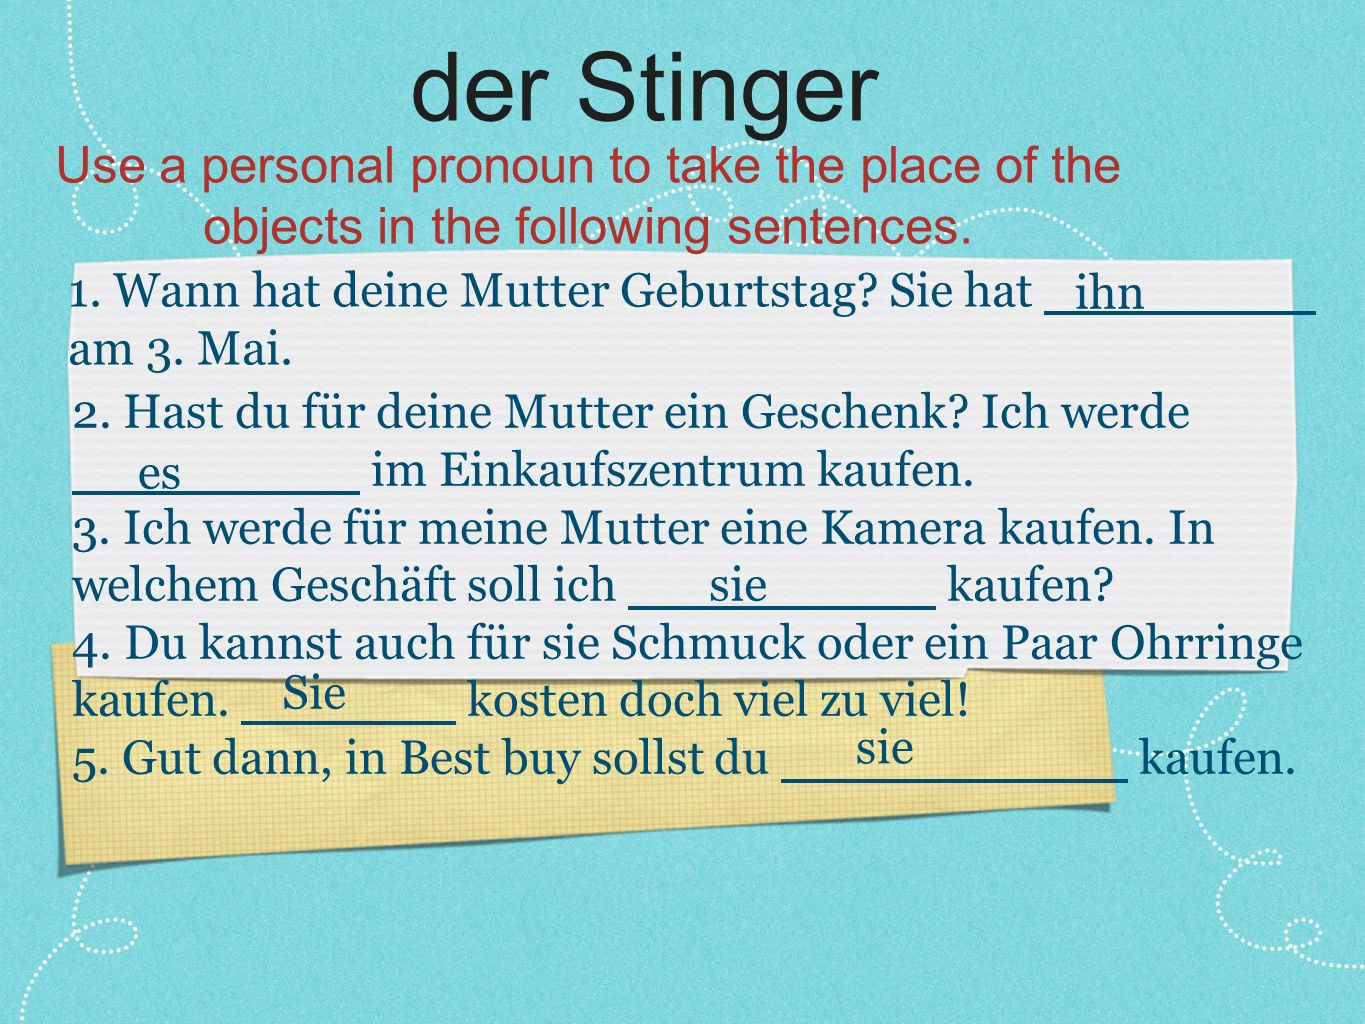 der Stinger Use a personal pronoun to take the place of the objects in the following sentences.